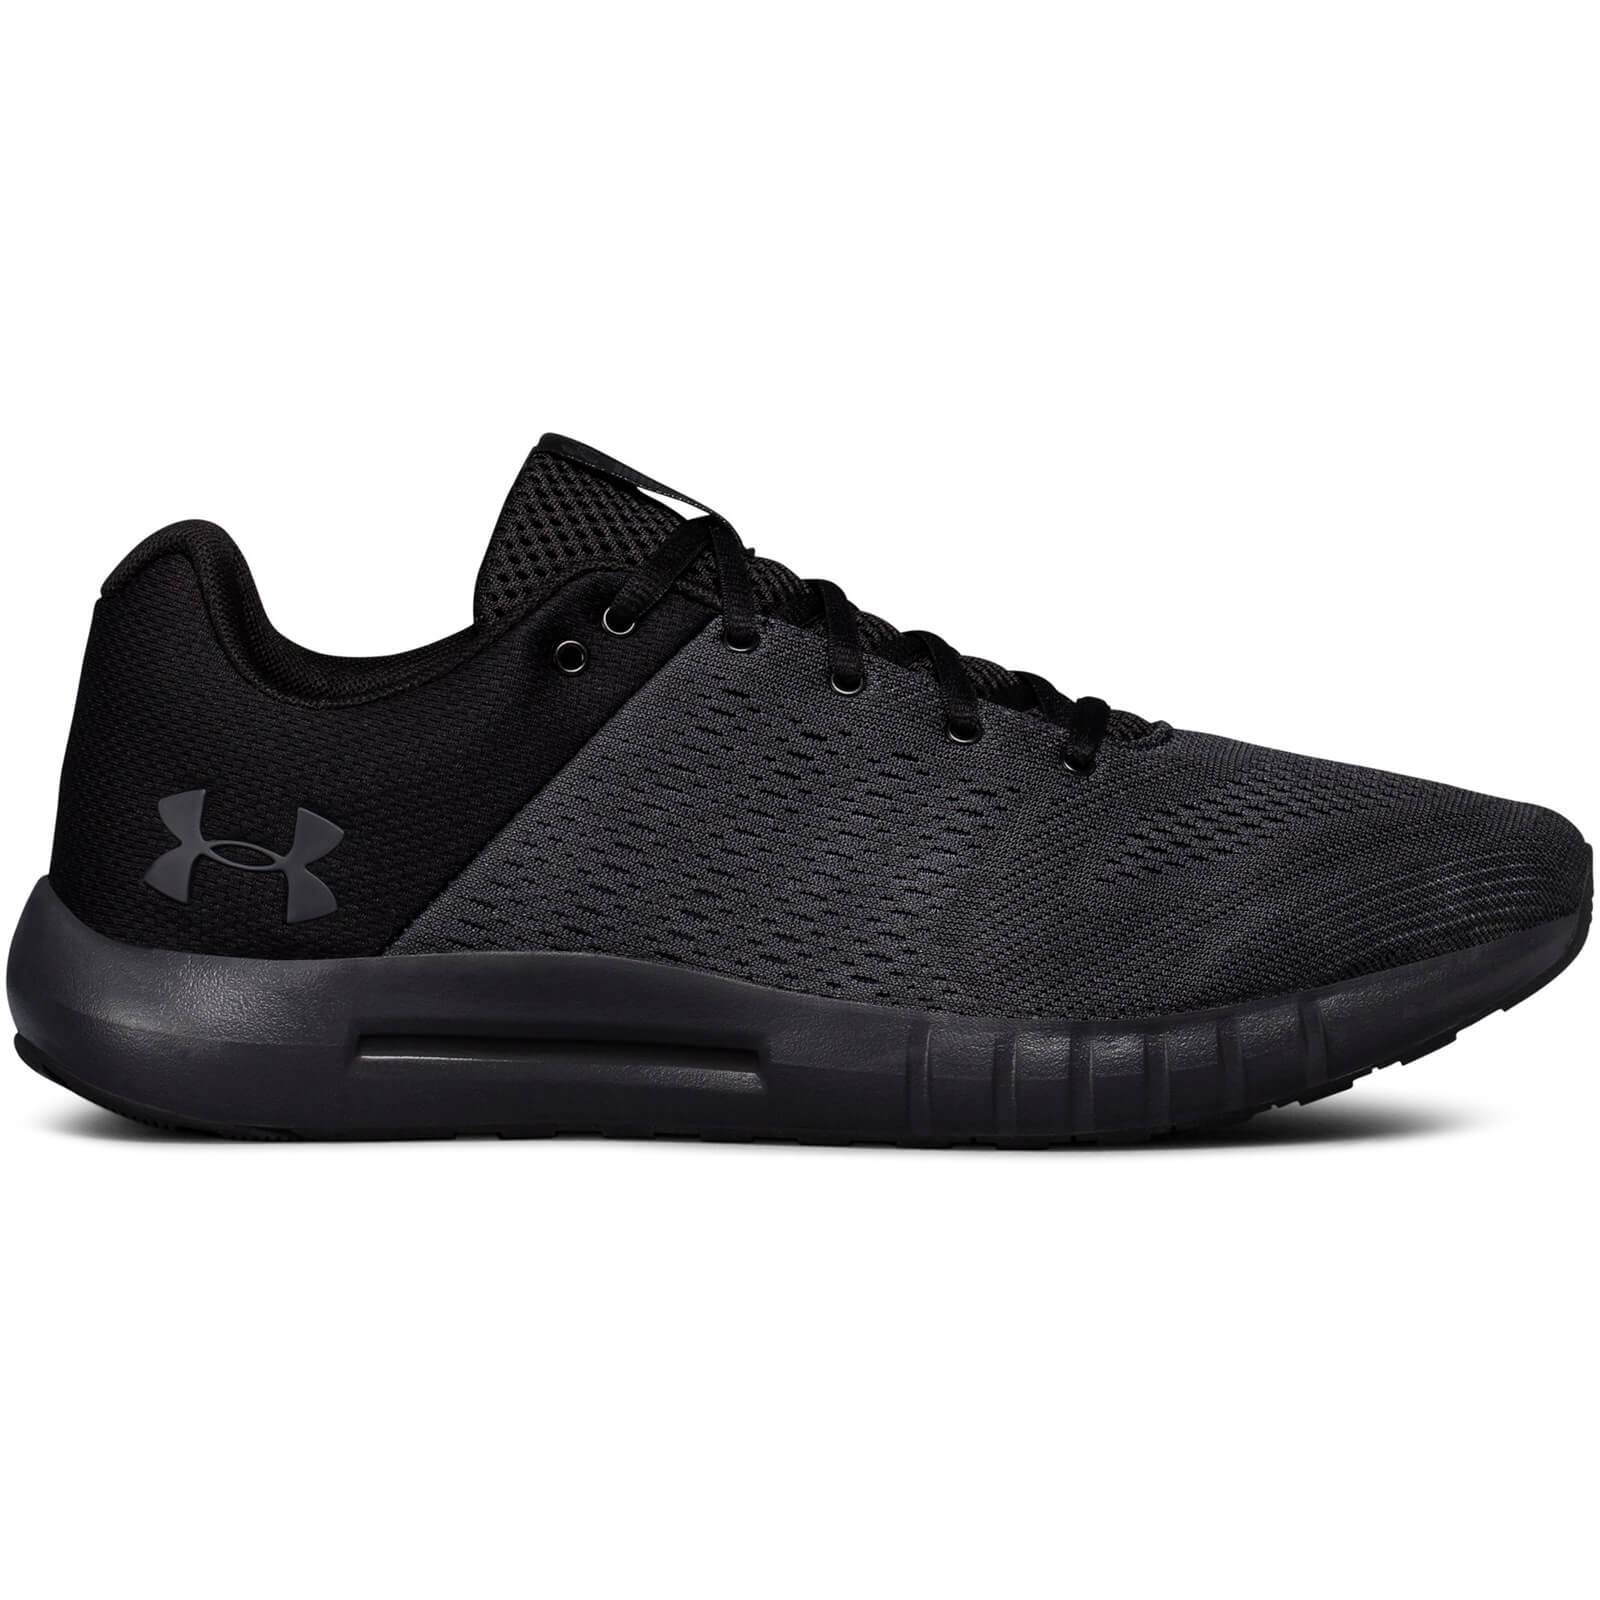 Under Armour Men's Micro G Pursuit Running Shoes - Grey/White - US 11.5/UK 10.5 - Grey